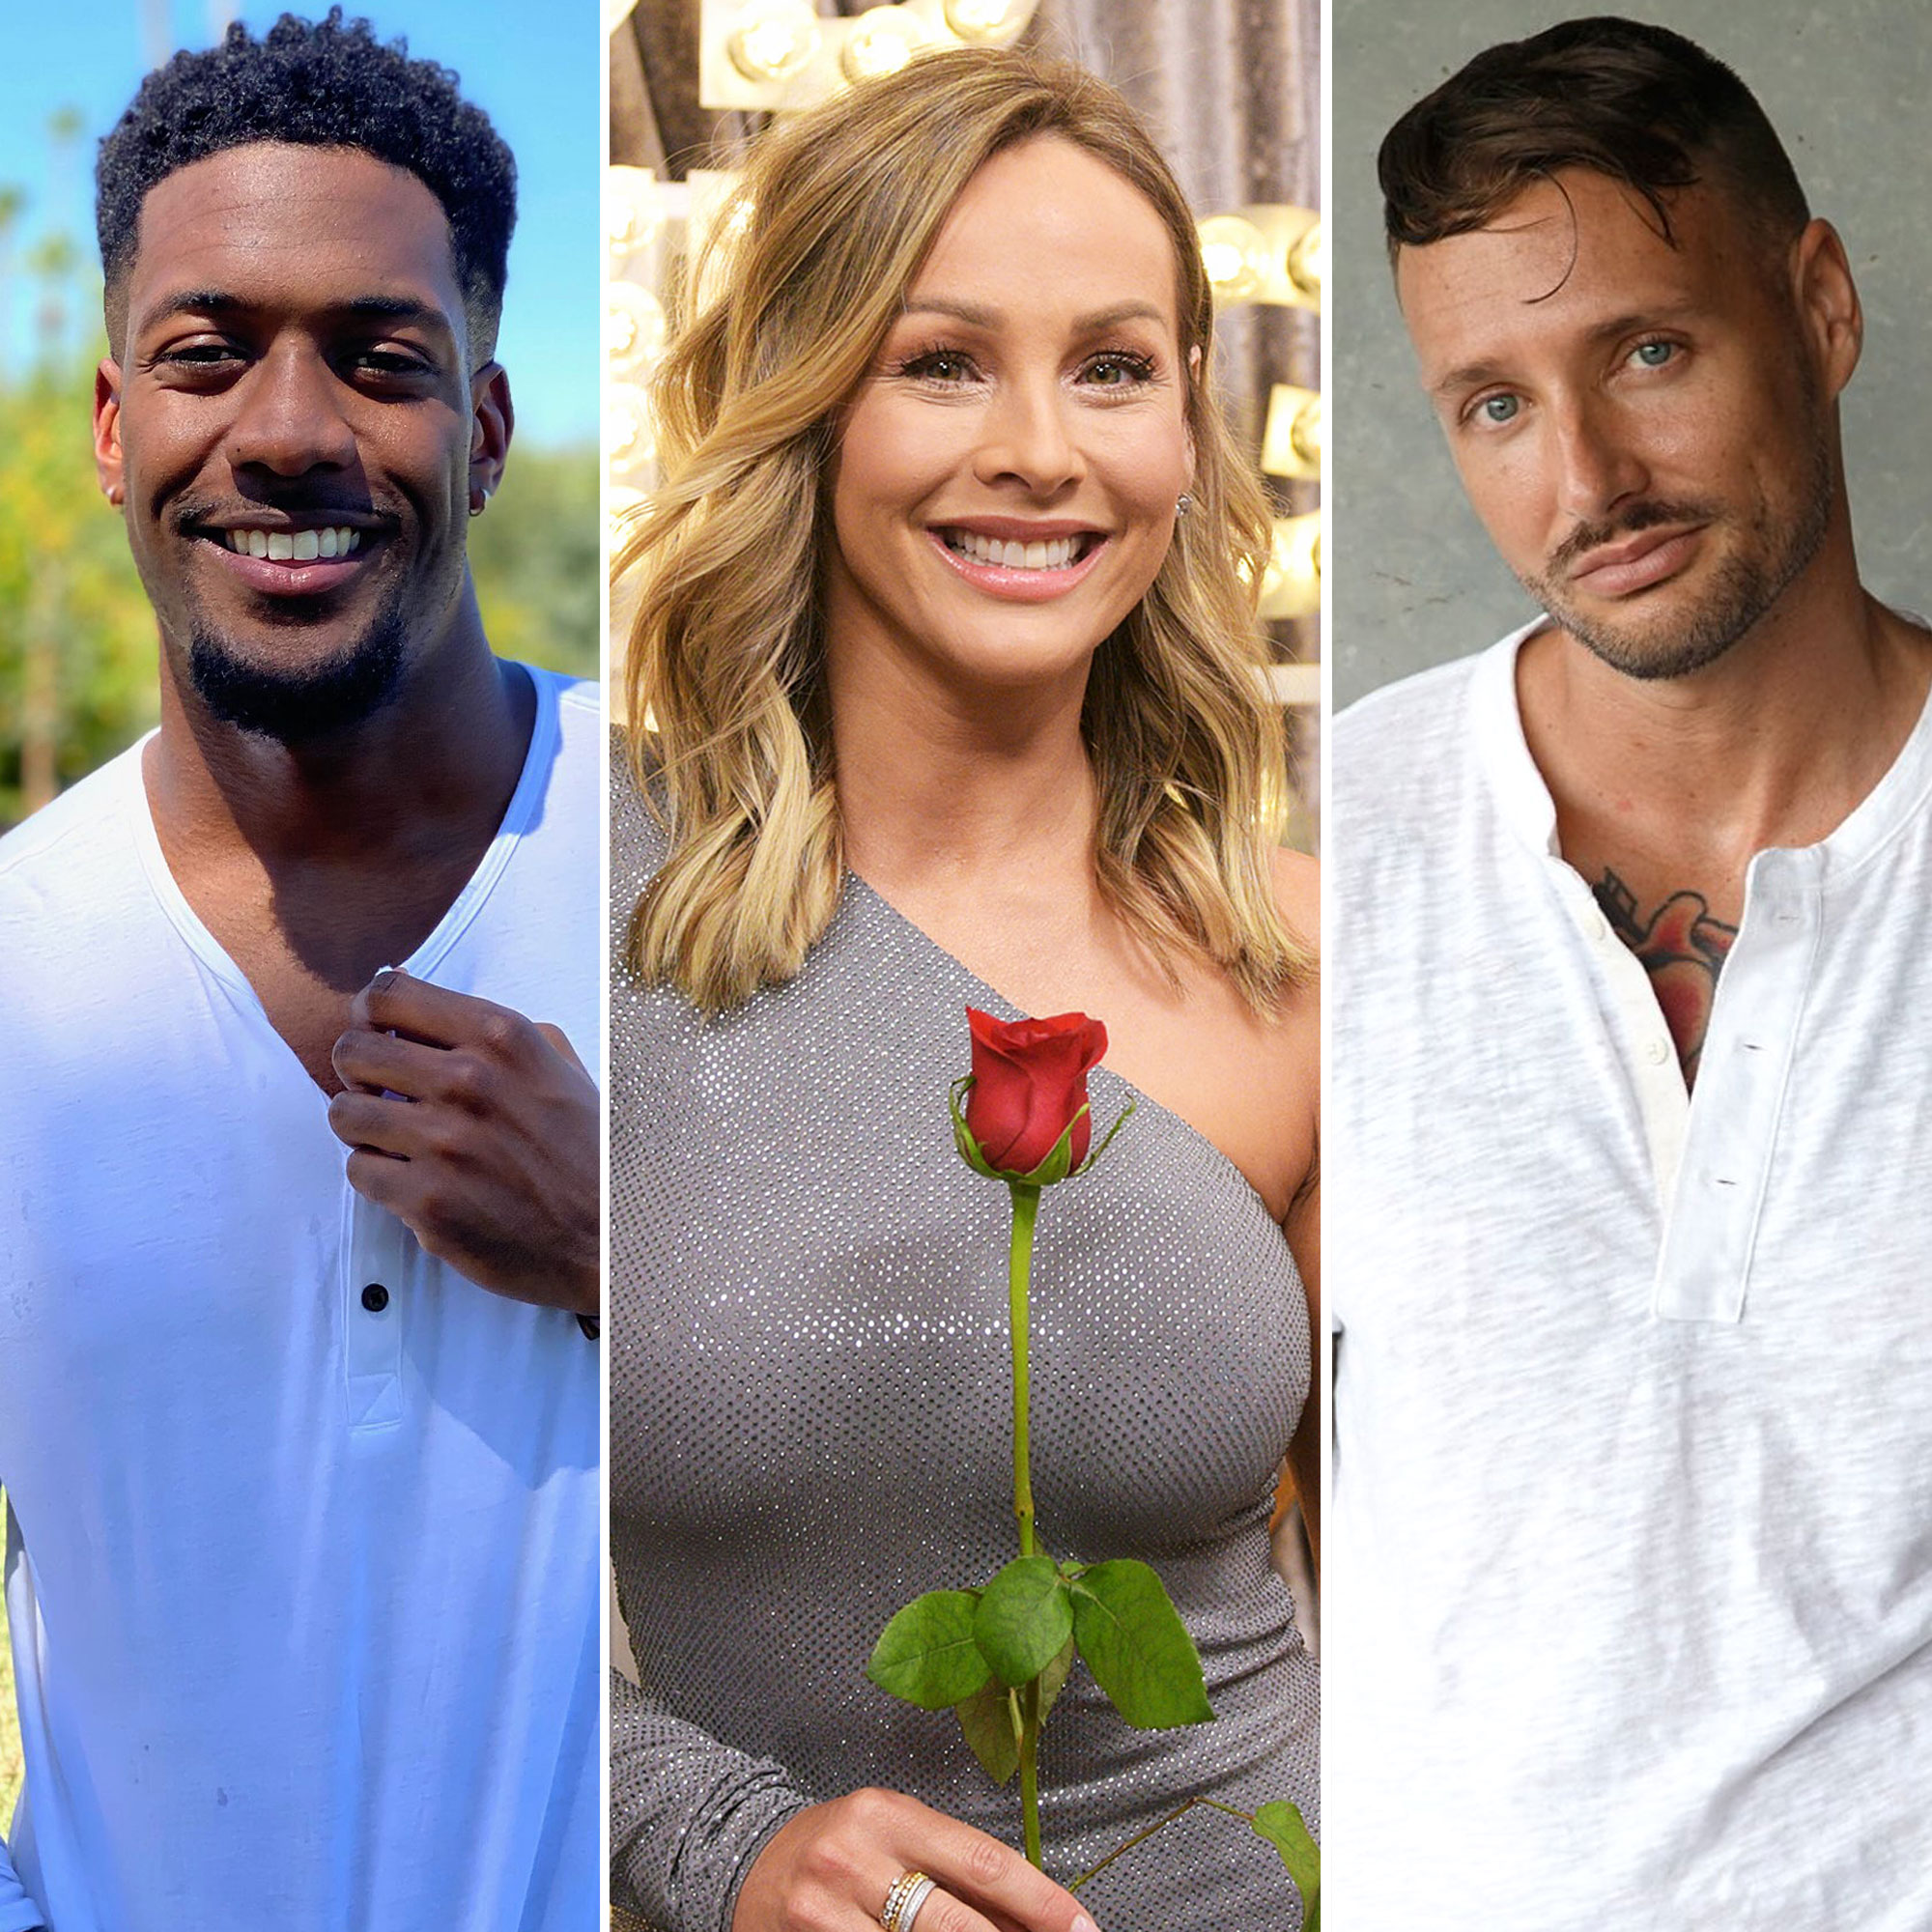 Meet the New Suitors on Clare Crawley's Season of 'The Bachelorette'